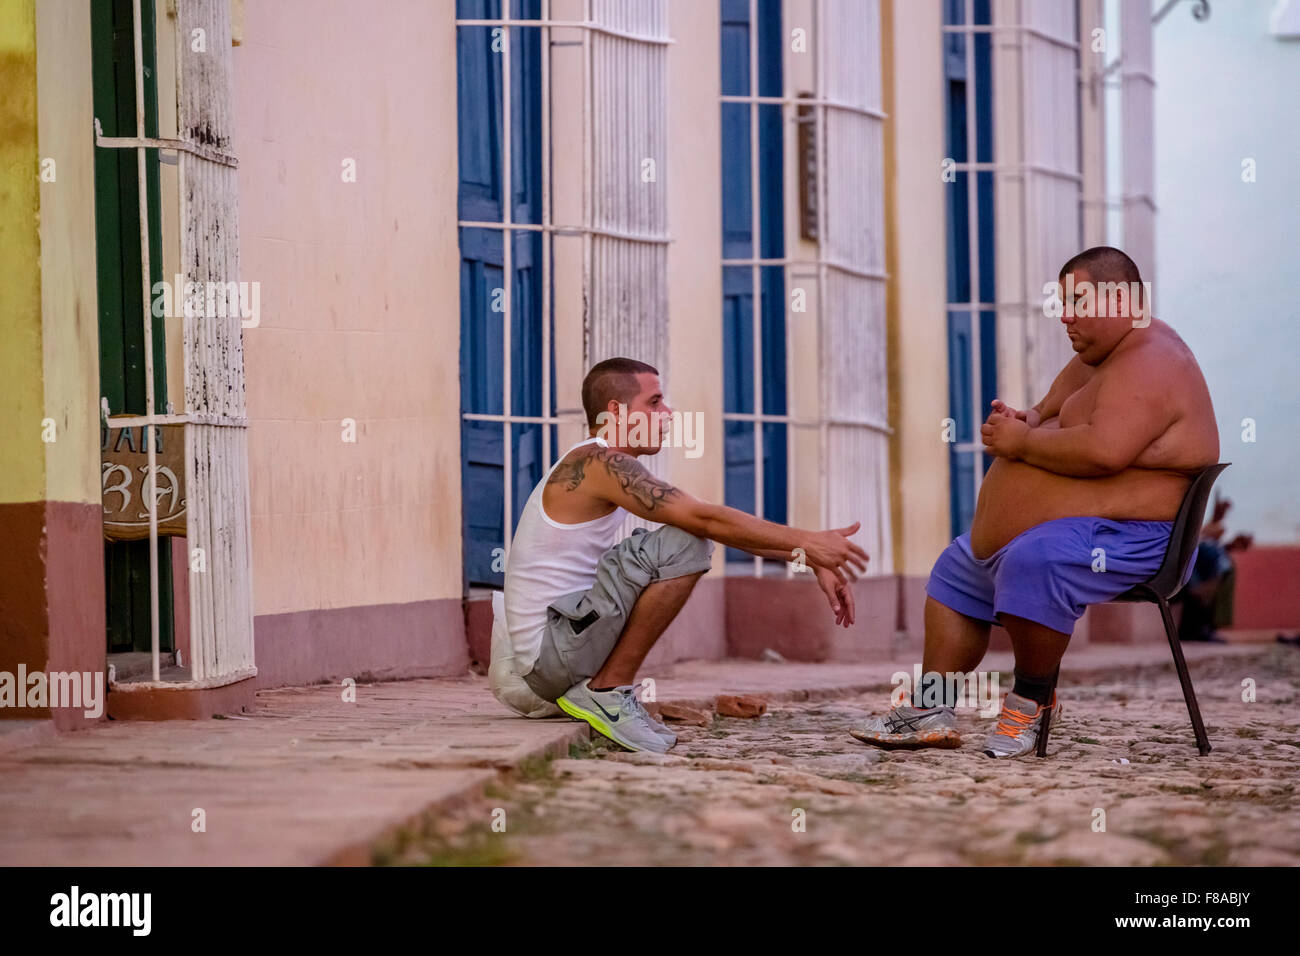 Street scene with an overweight Cubans in Trinidad, Street Scene, Cuba at the blue hour, Trinidad, Cuba, Sancti - Stock Image